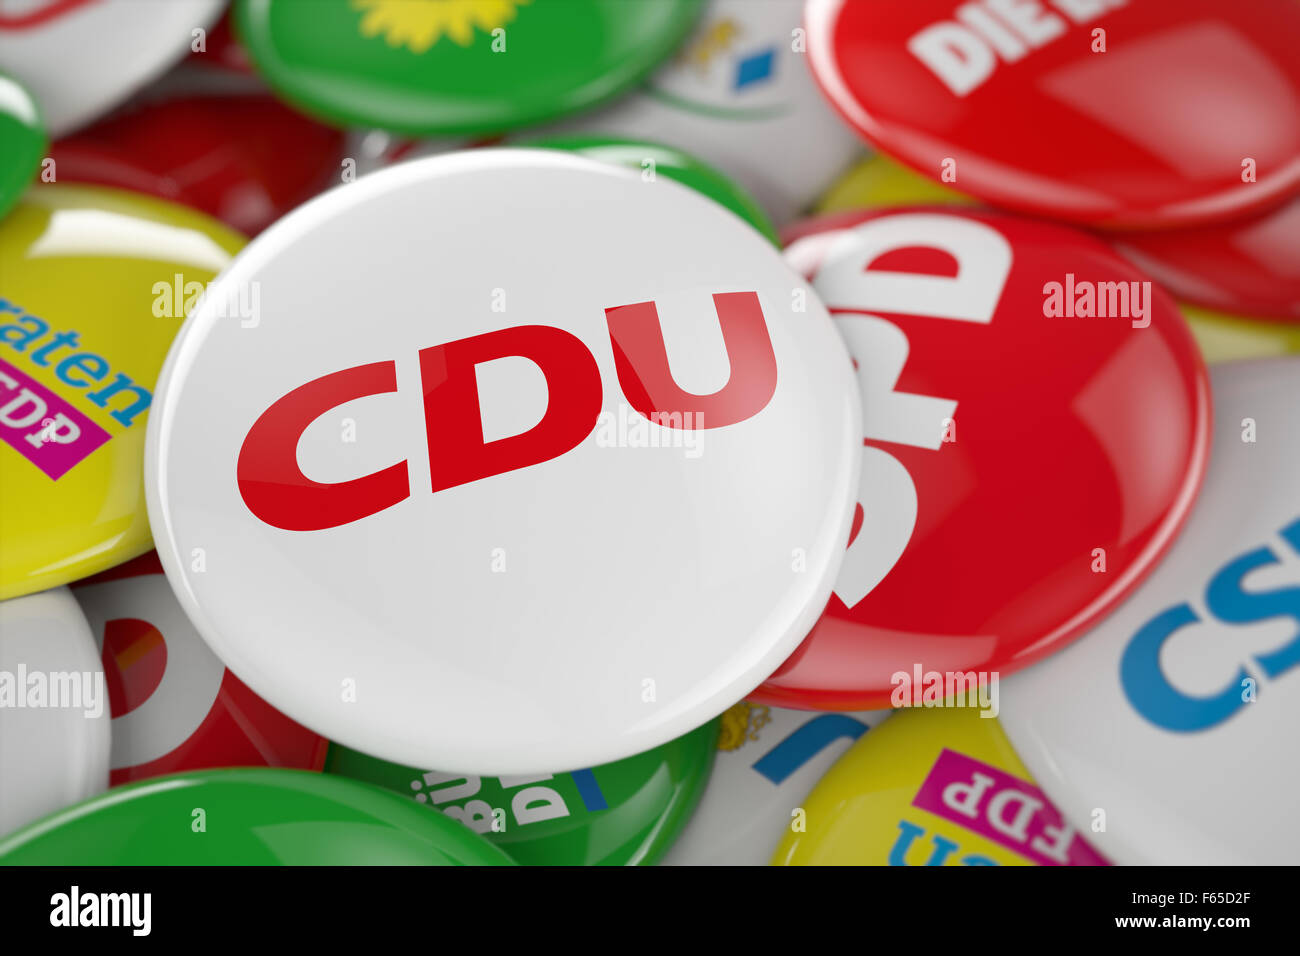 German political party CDU button - Stock Image